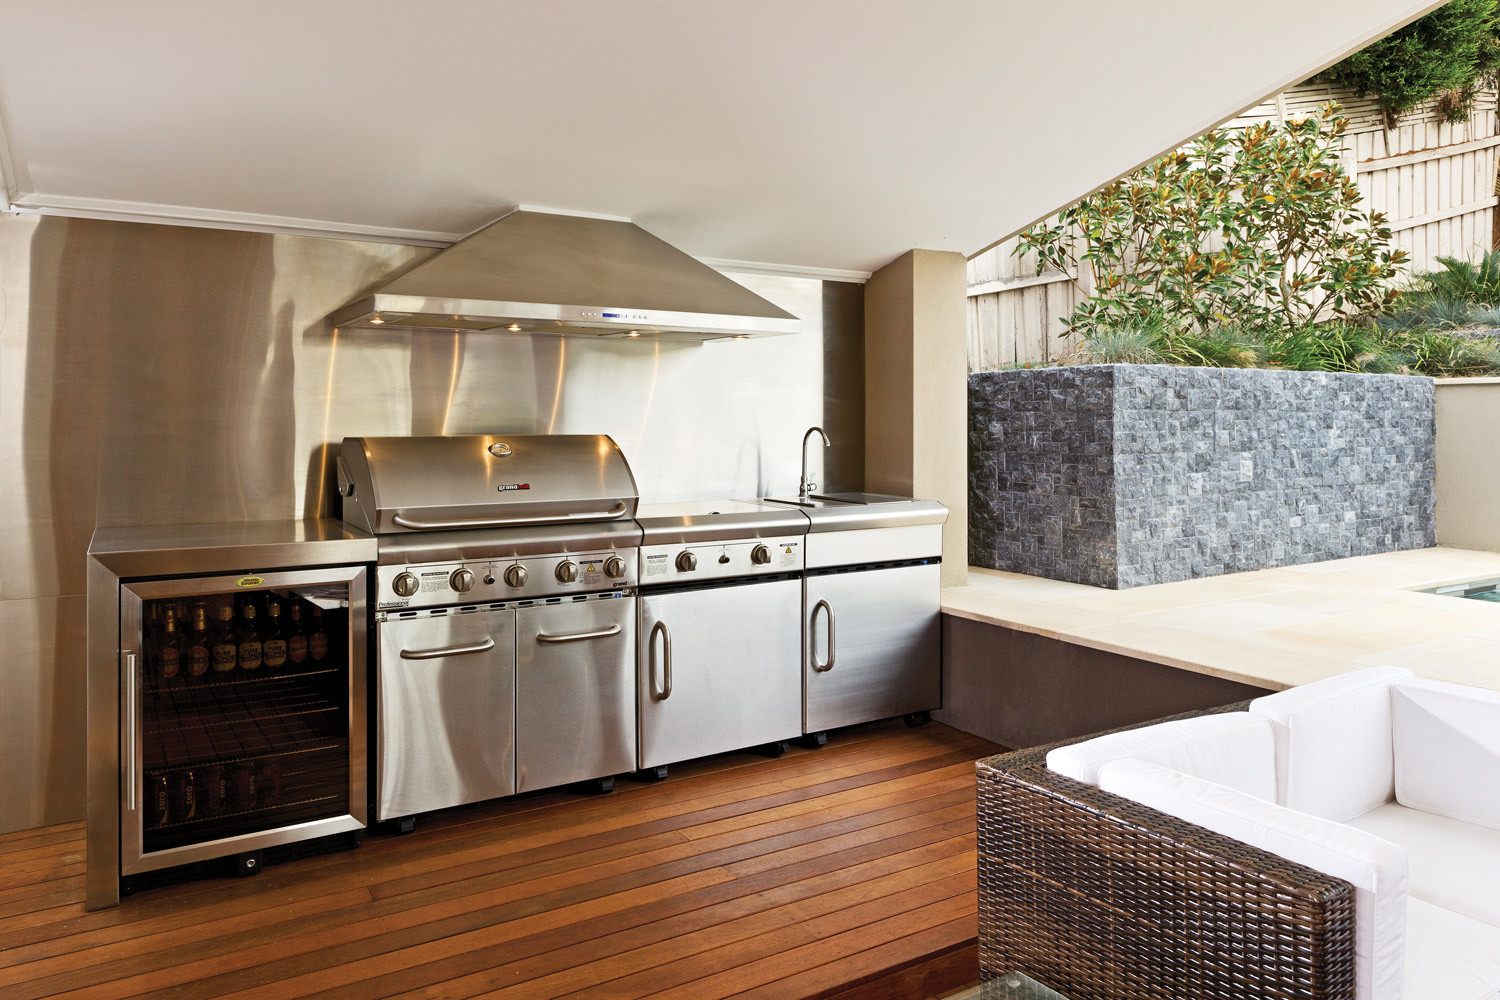 Stainless Outdoor Kitchen  Cooking capers A look at outdoor kitchens pletehome